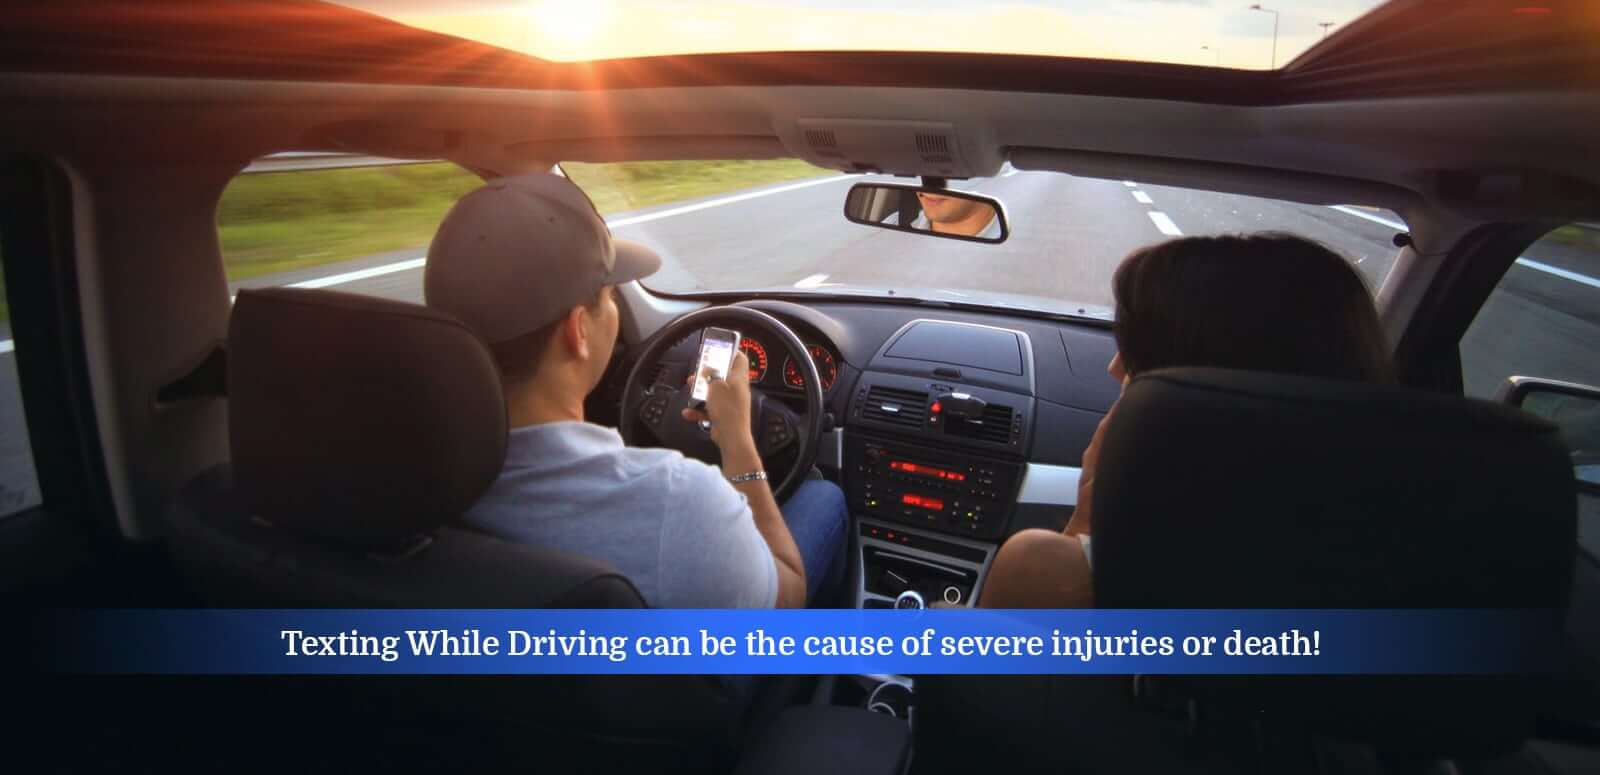 Texting While Driving can be the cause of severe injuries or death!